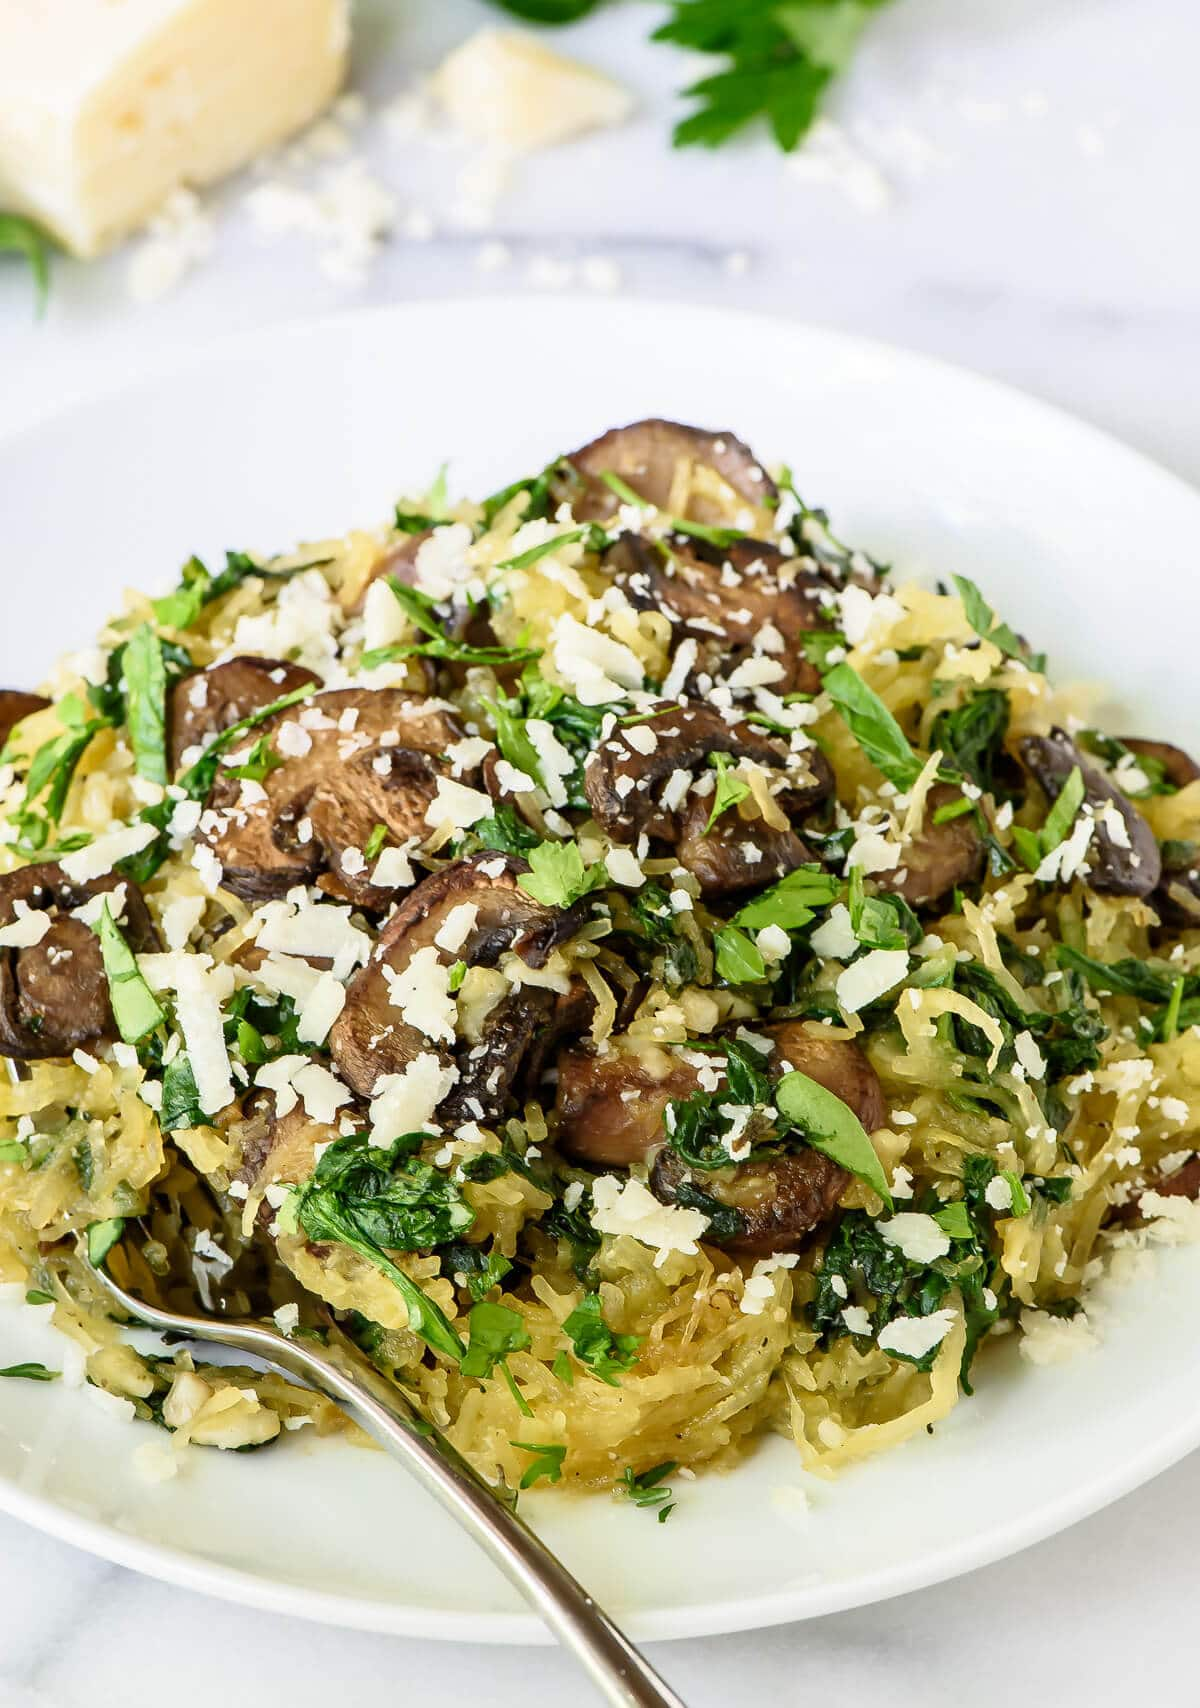 This Roasted Spaghetti Squash with Parmesan and Mushrooms is one of my ...